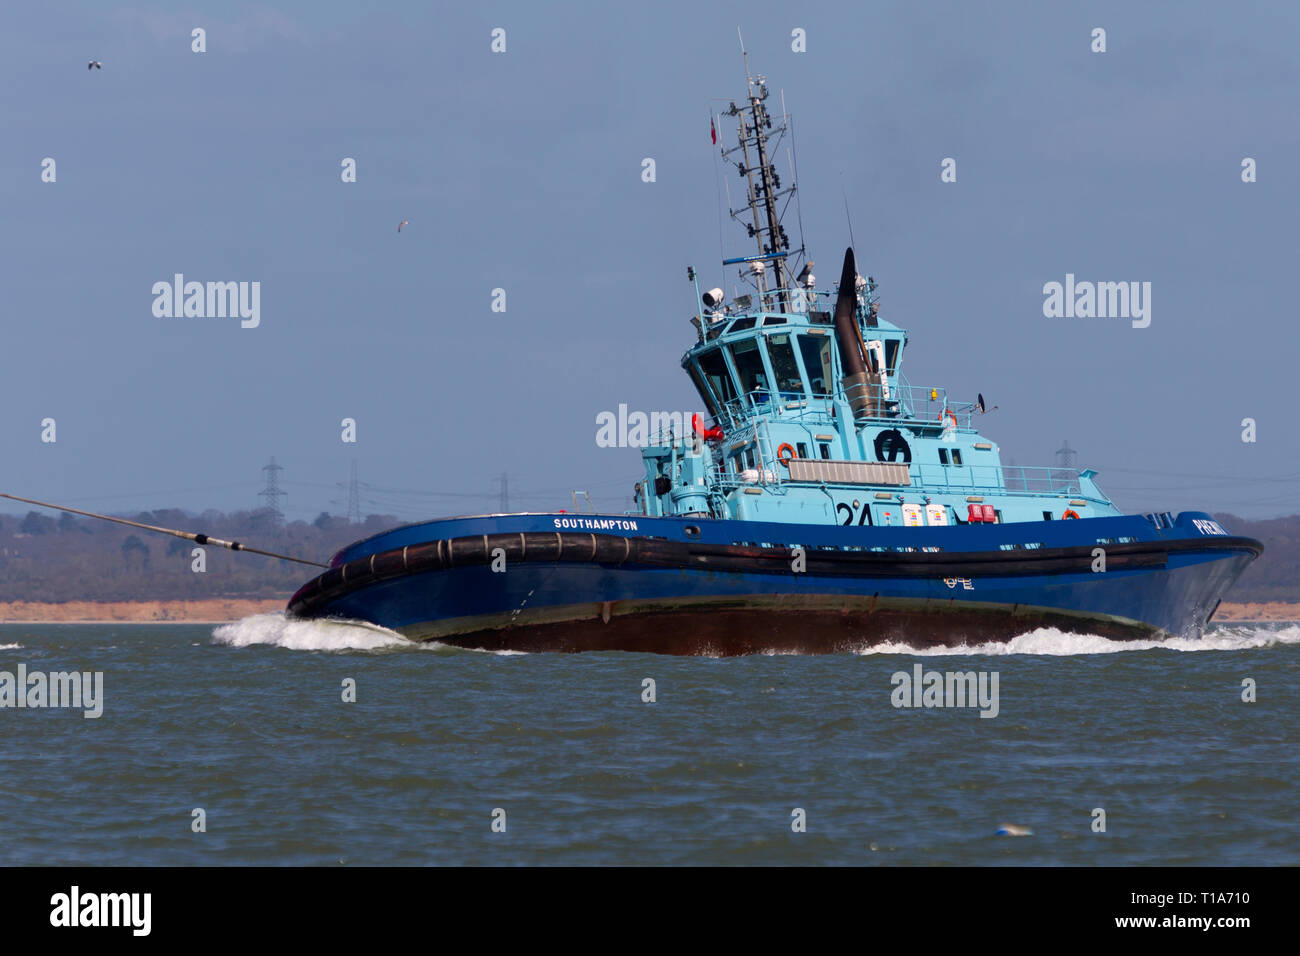 Tractor Tugs Stock Photos & Tractor Tugs Stock Images - Alamy